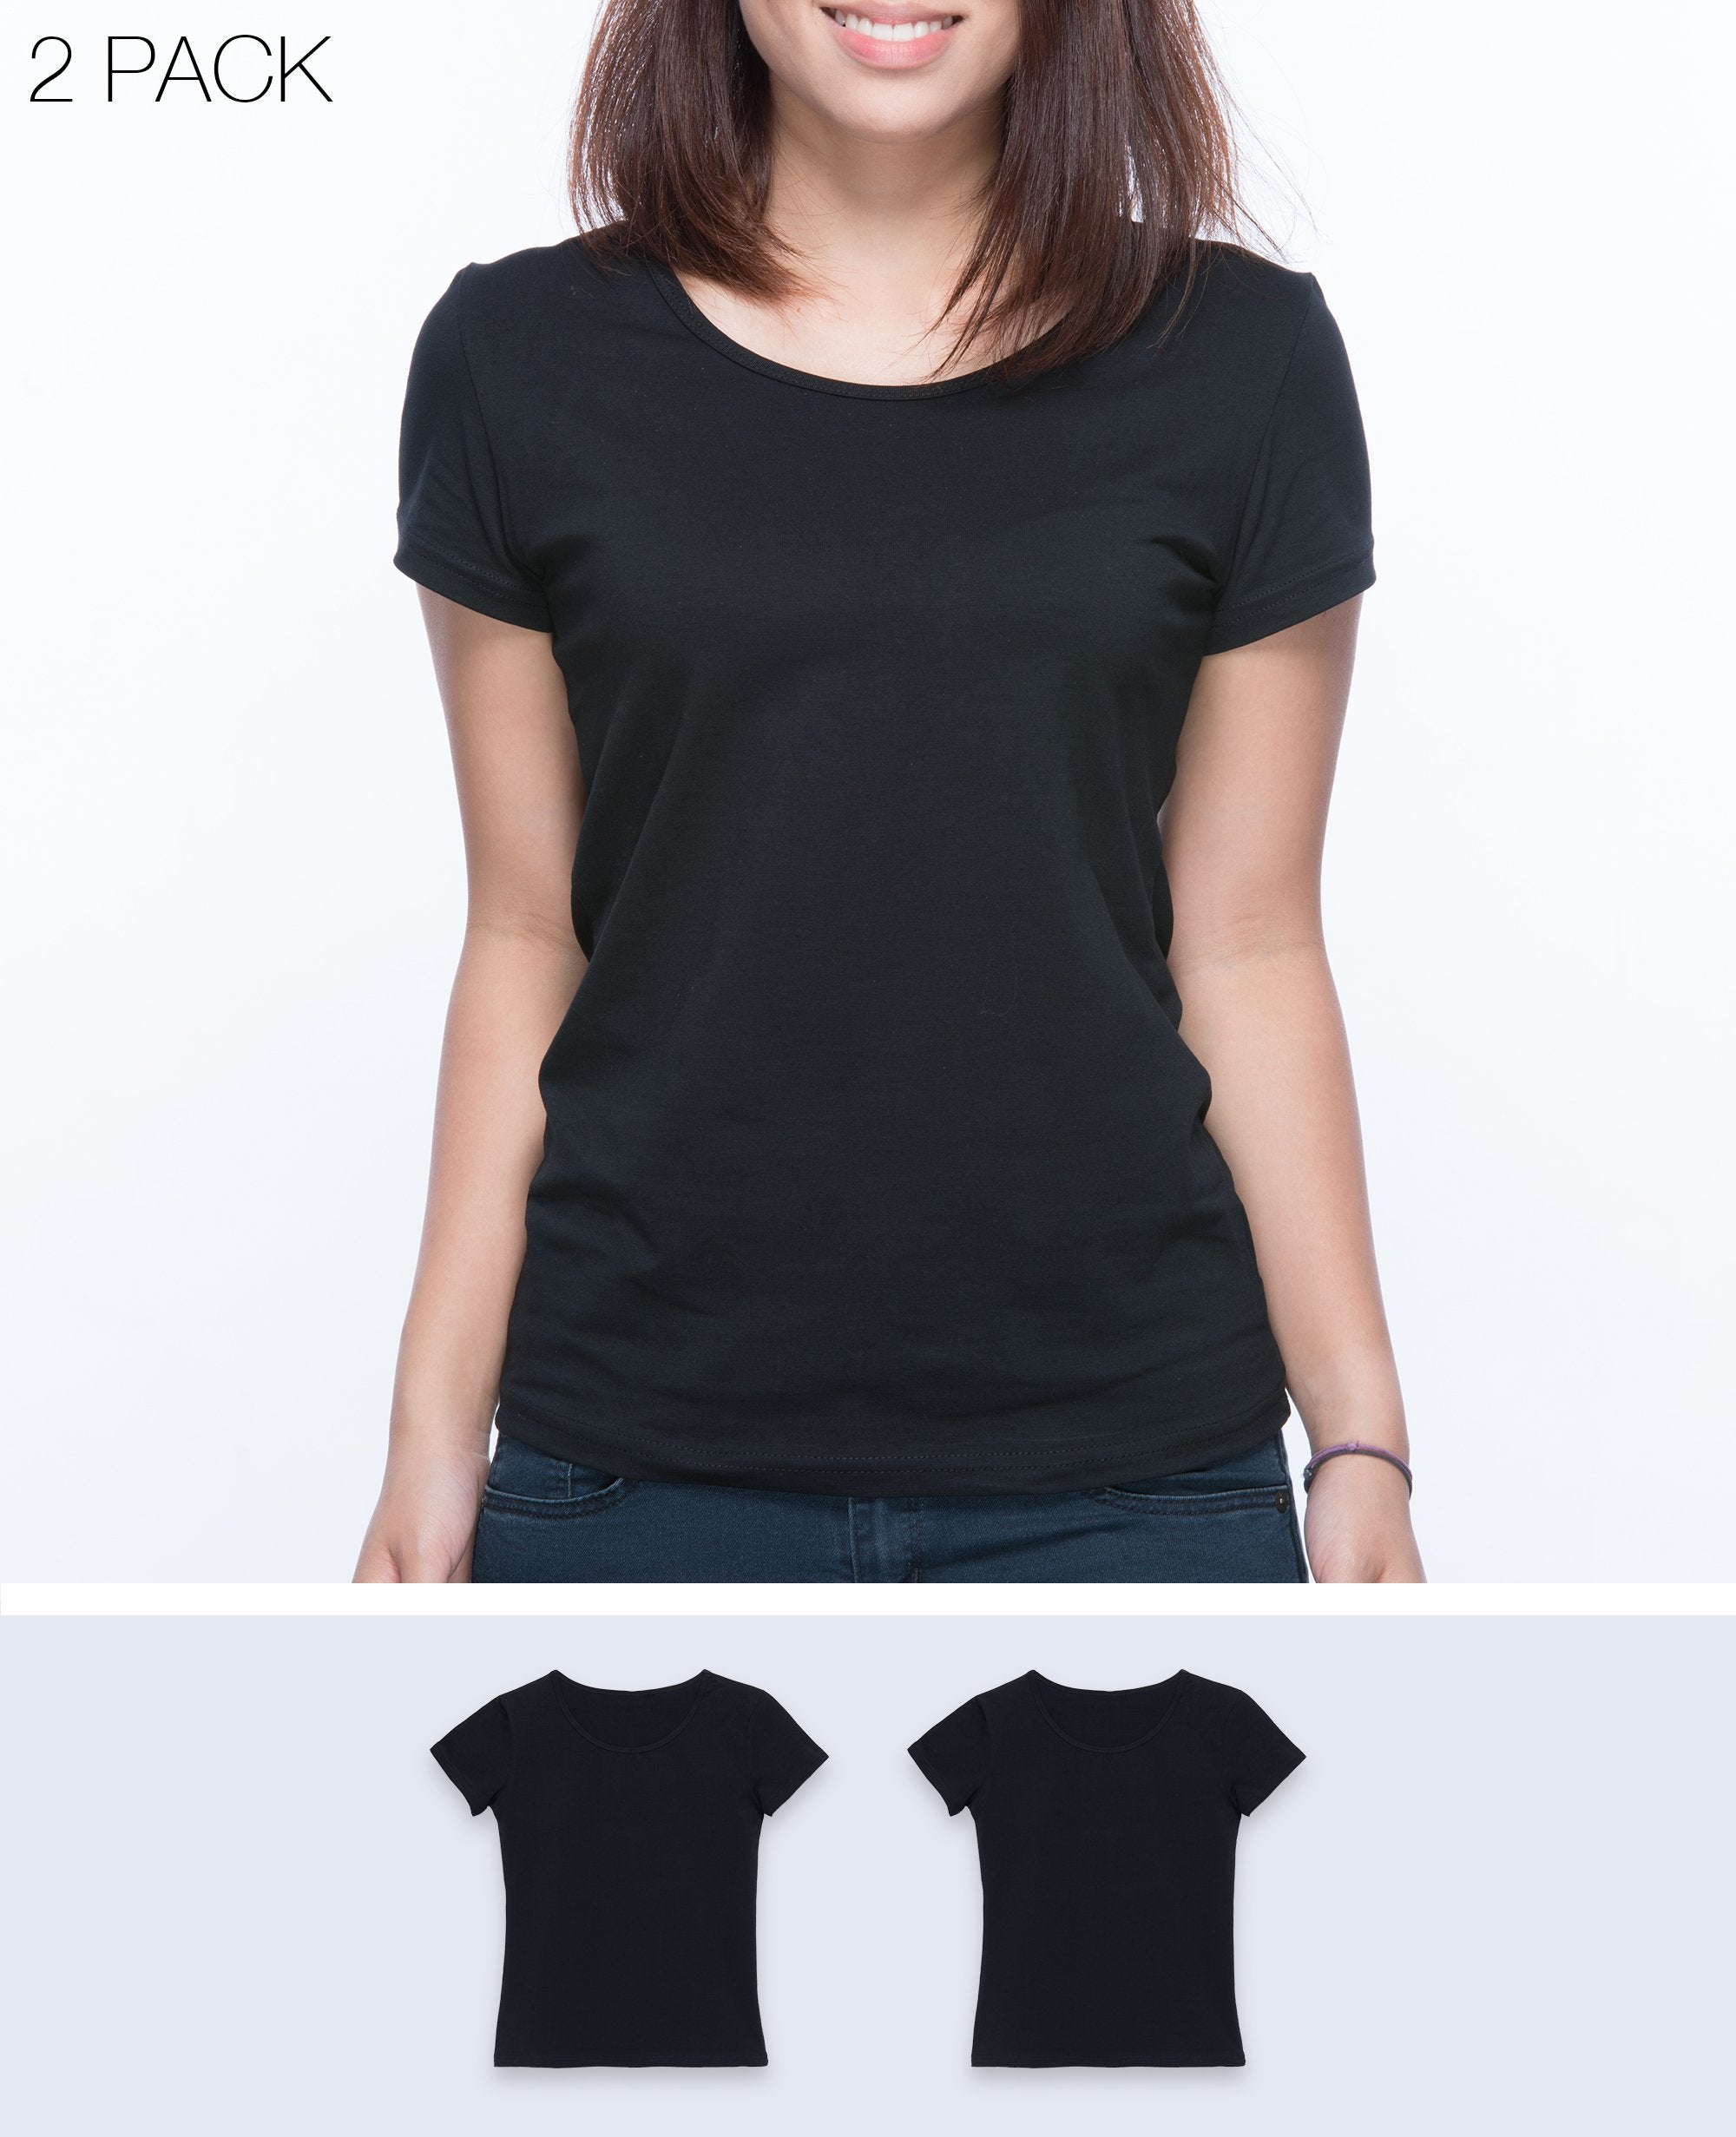 Slim fit T-shirt Women in Black 2 pack - T-Shirts - BRANMA - BRANMA